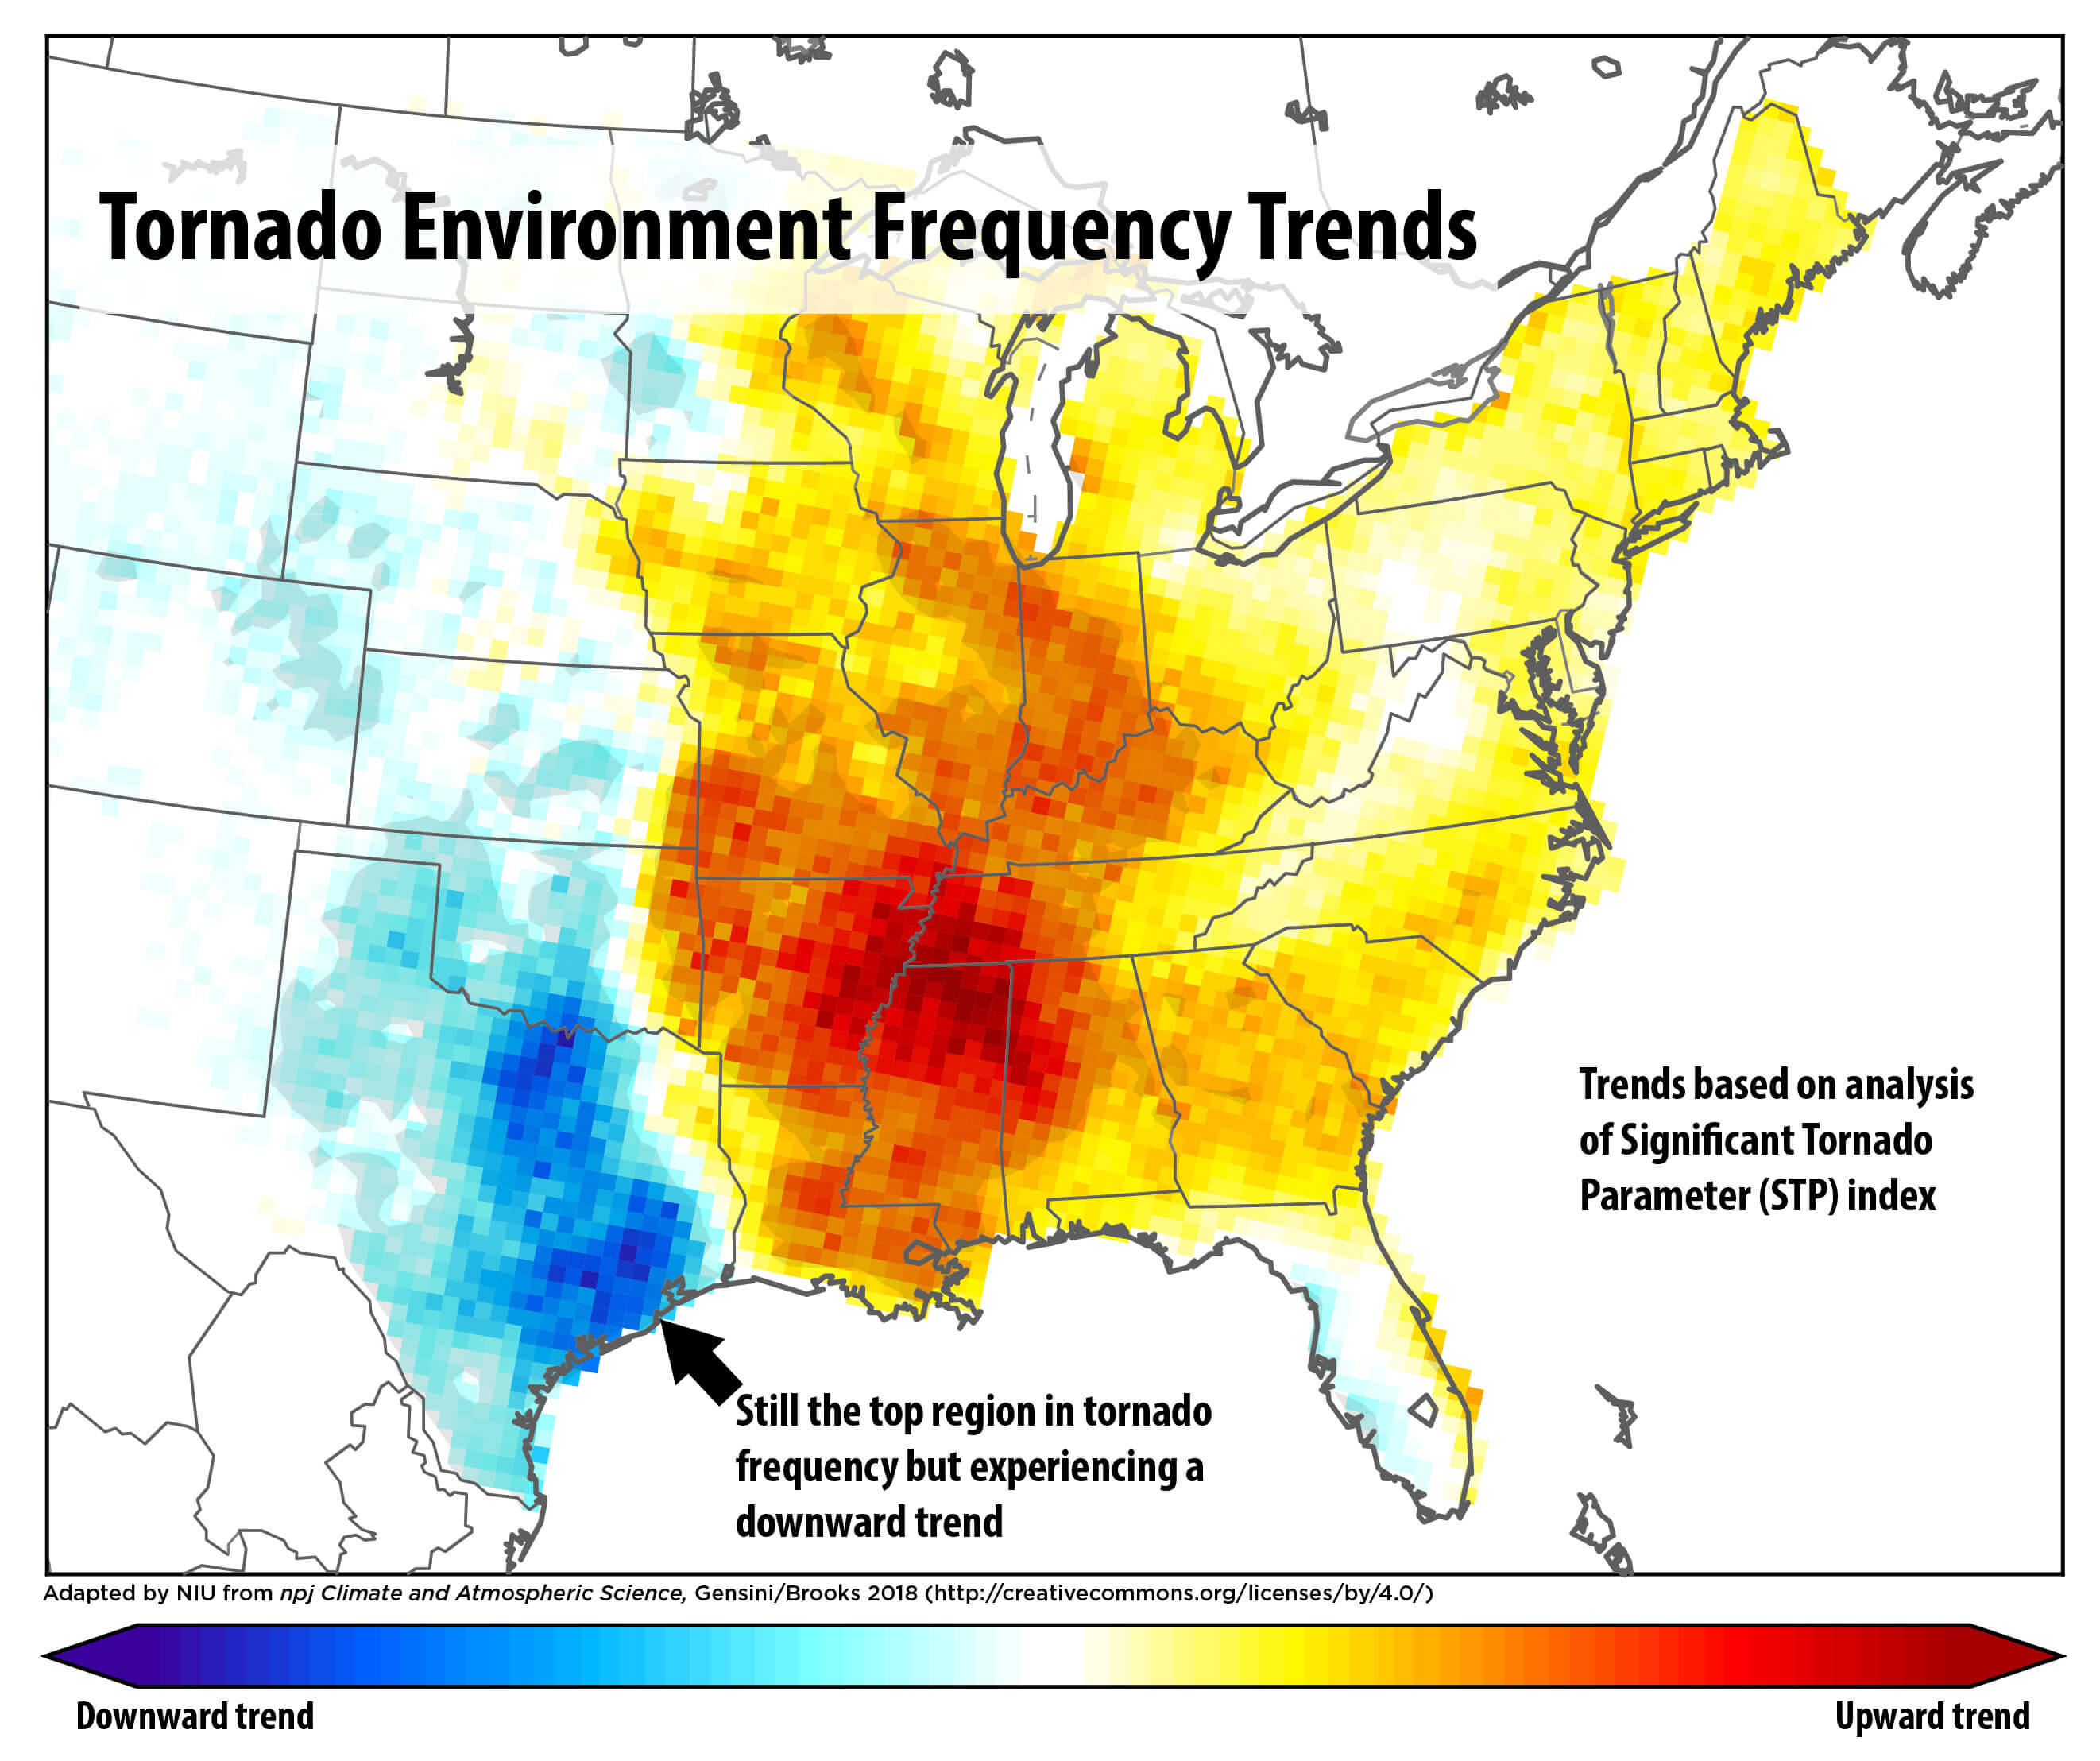 Study Us Tornado Frequency Shifting Eastward From Great Plains - Us-tornado-map